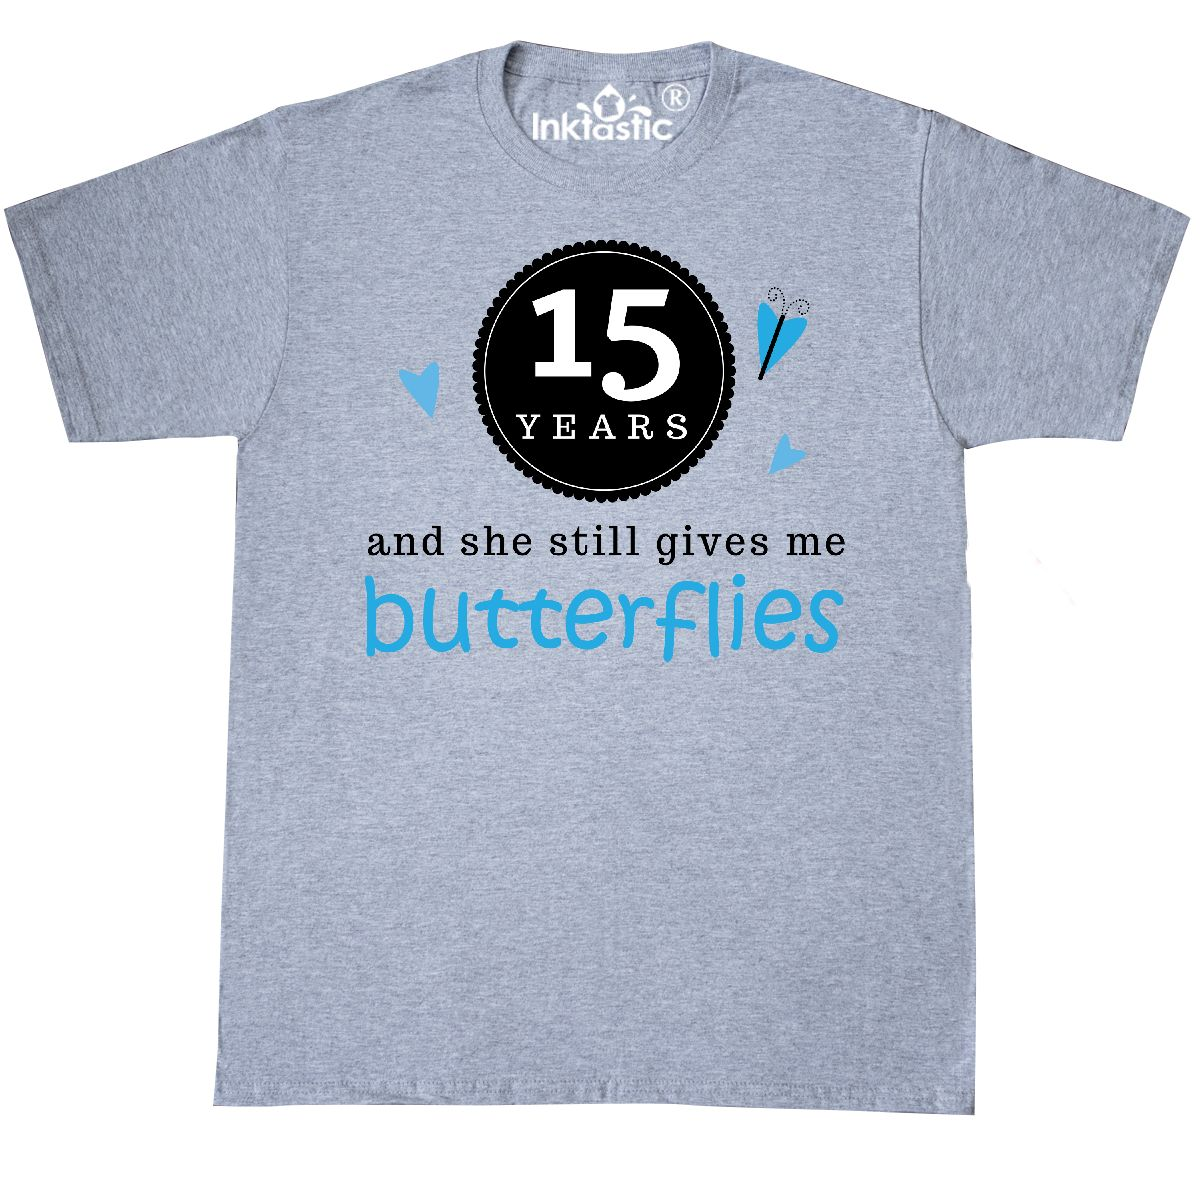 15th Wedding Anniversary Gift Ideas For Men: Inktastic 15th Anniversary Gift For Him T-Shirt Funny